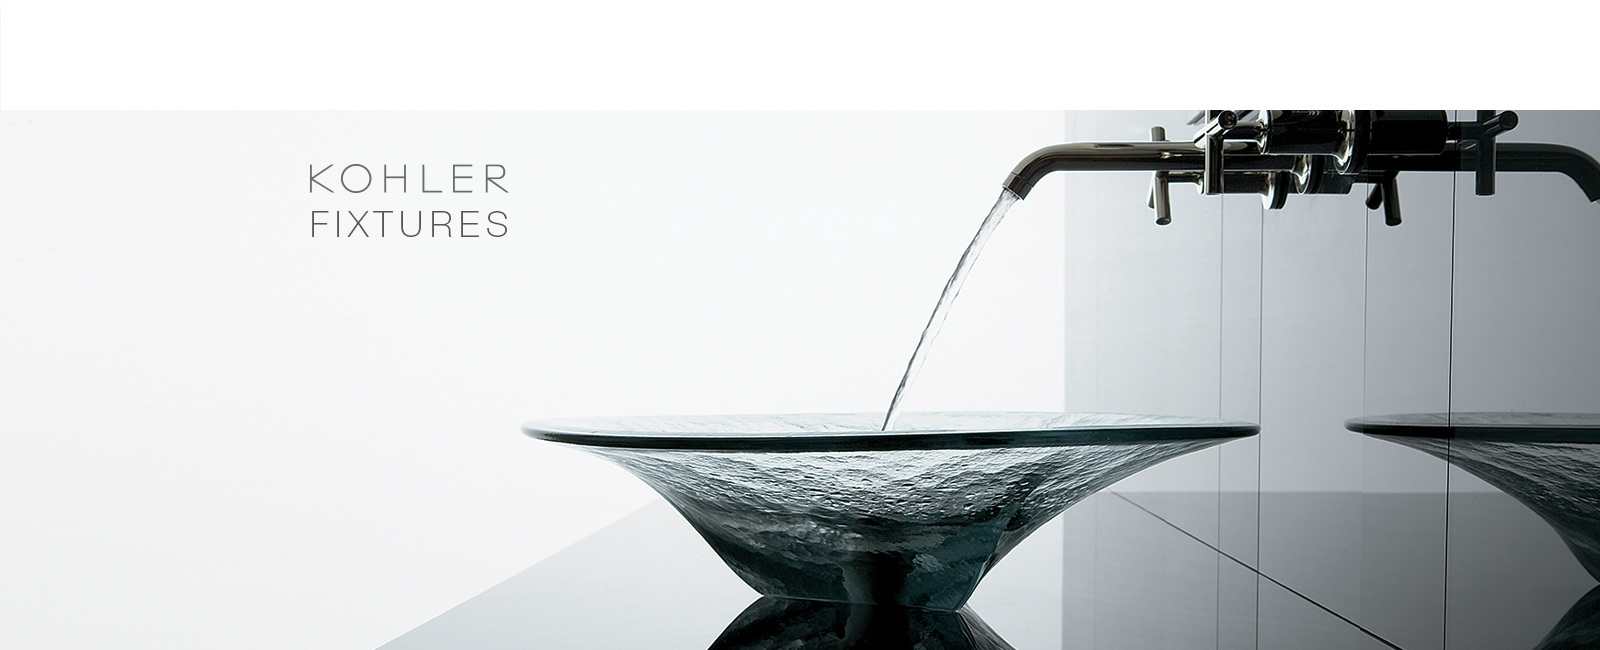 Kloop Studio - Kohler Fixtures